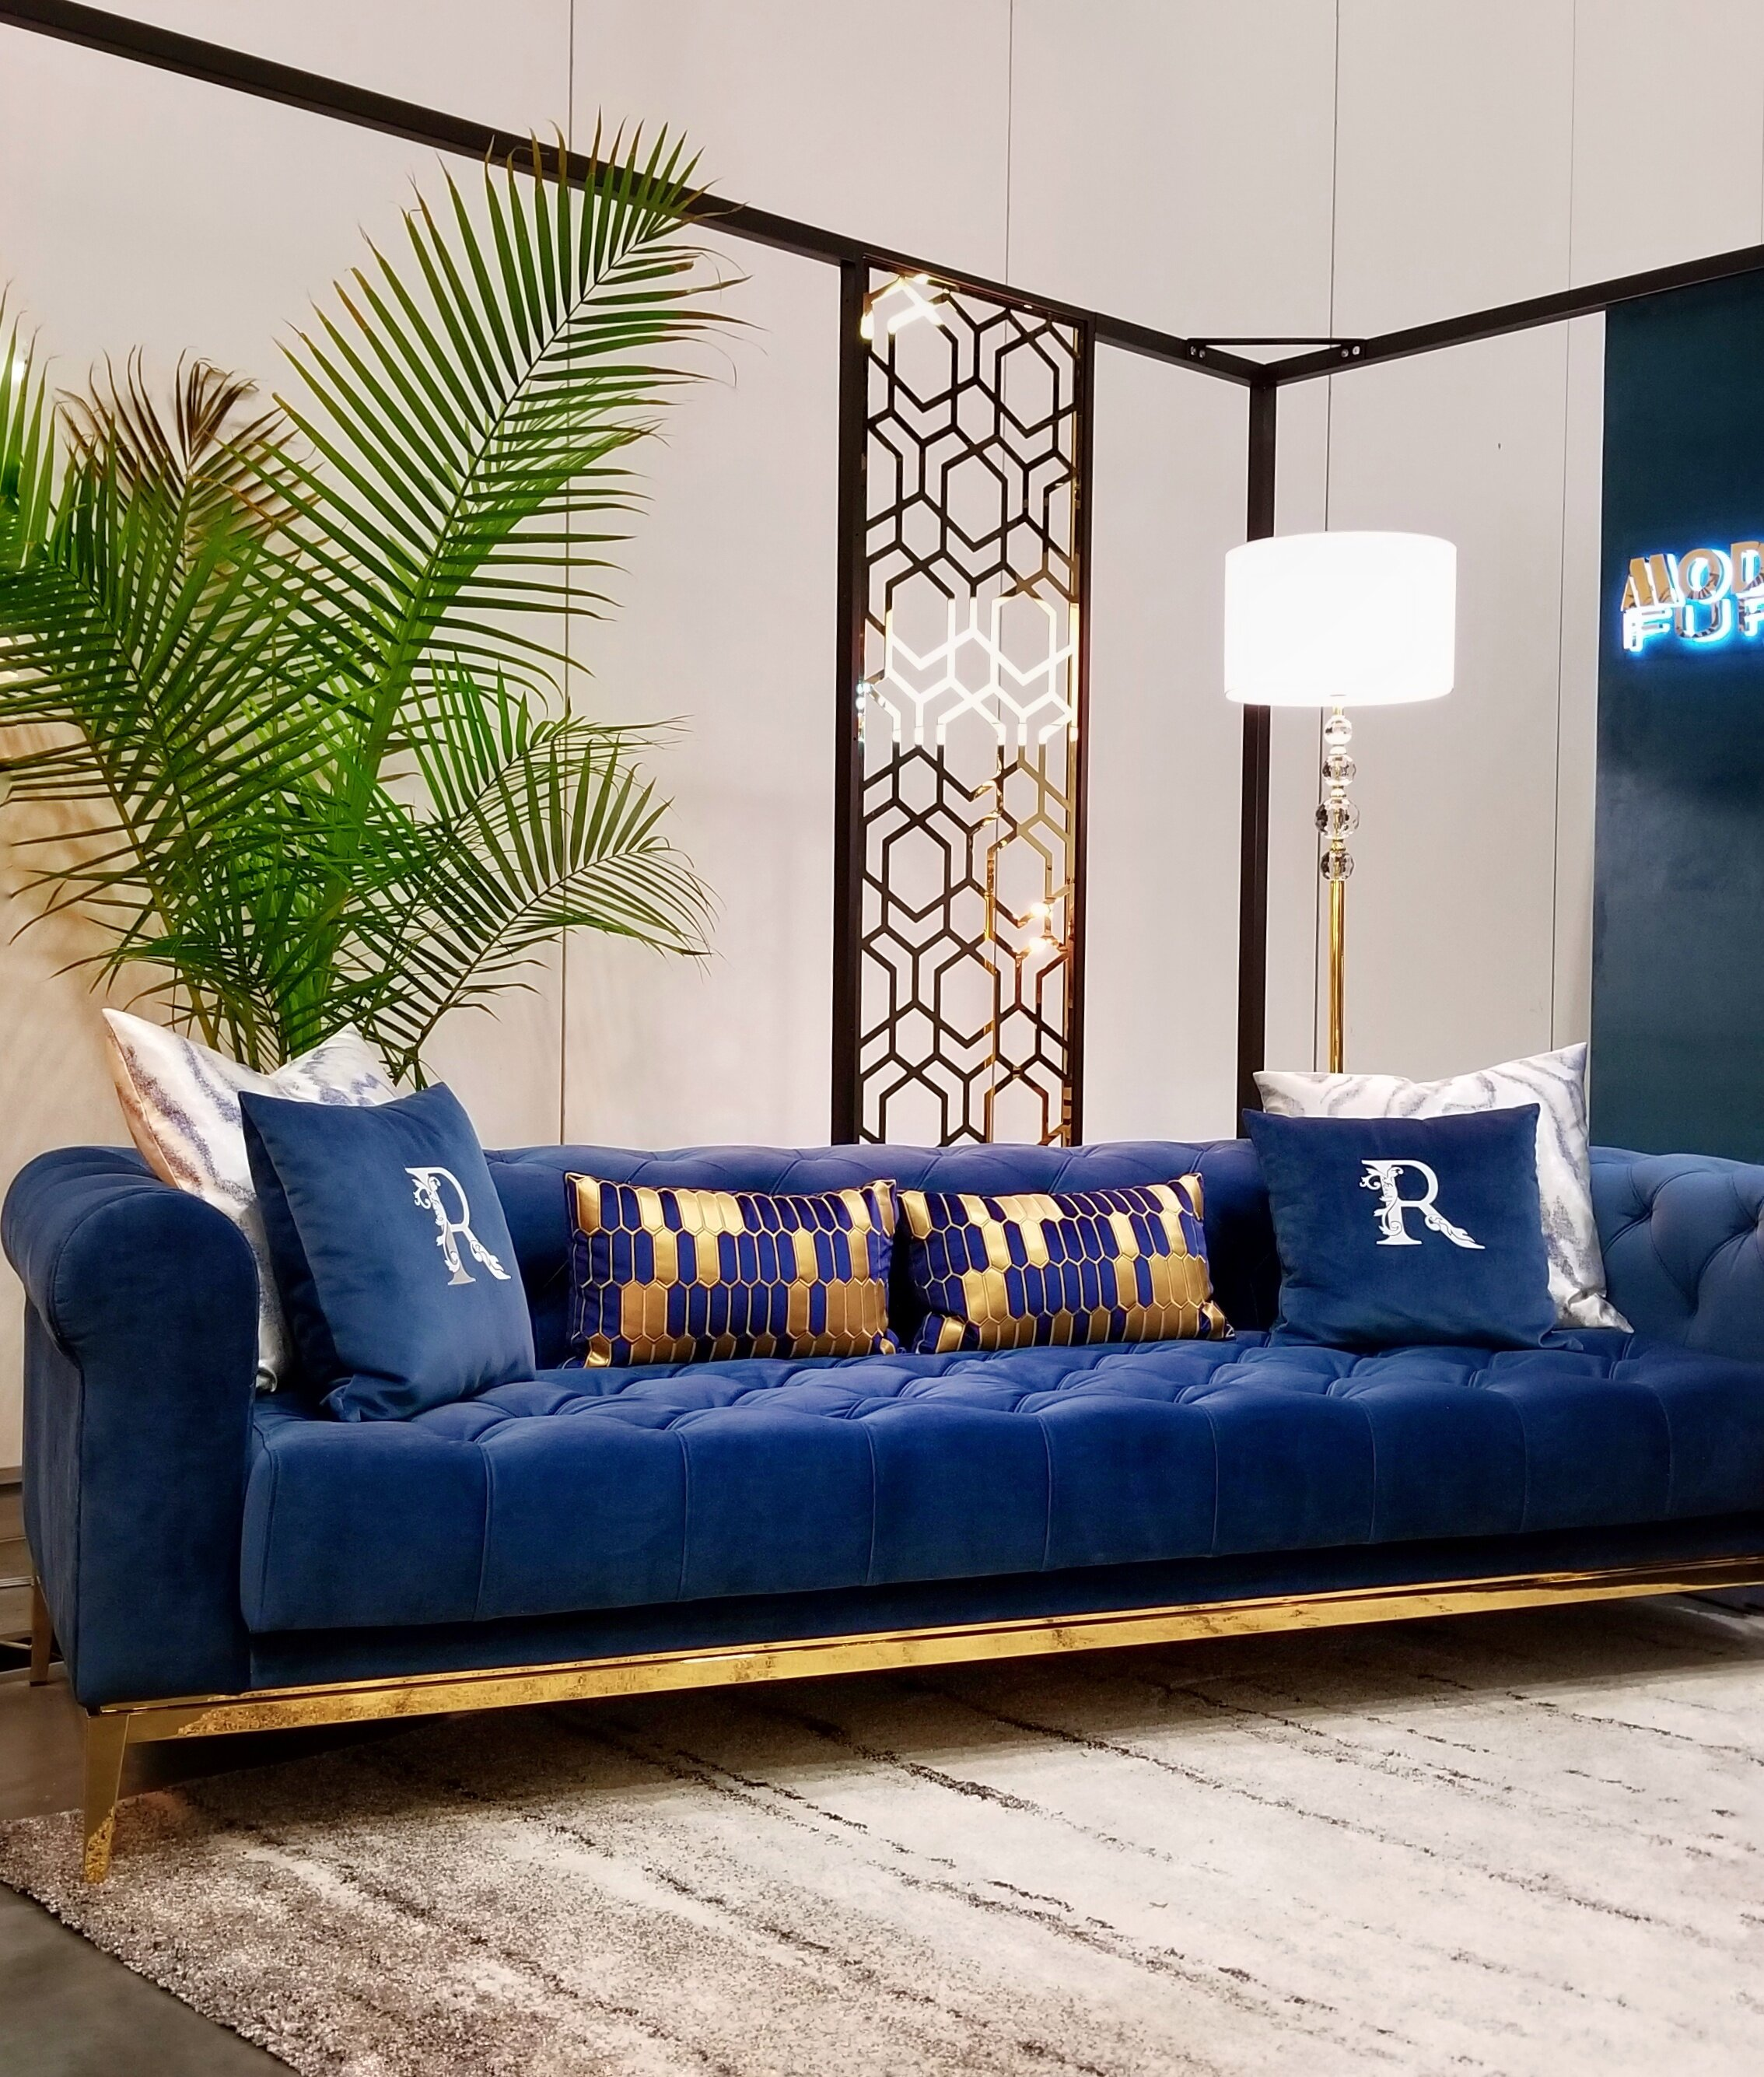 interior-designs-by-adrienne-cranbrook-bc-indigo-blue-sofa-blue-gold-pillows-floor-lamp-button-tufted